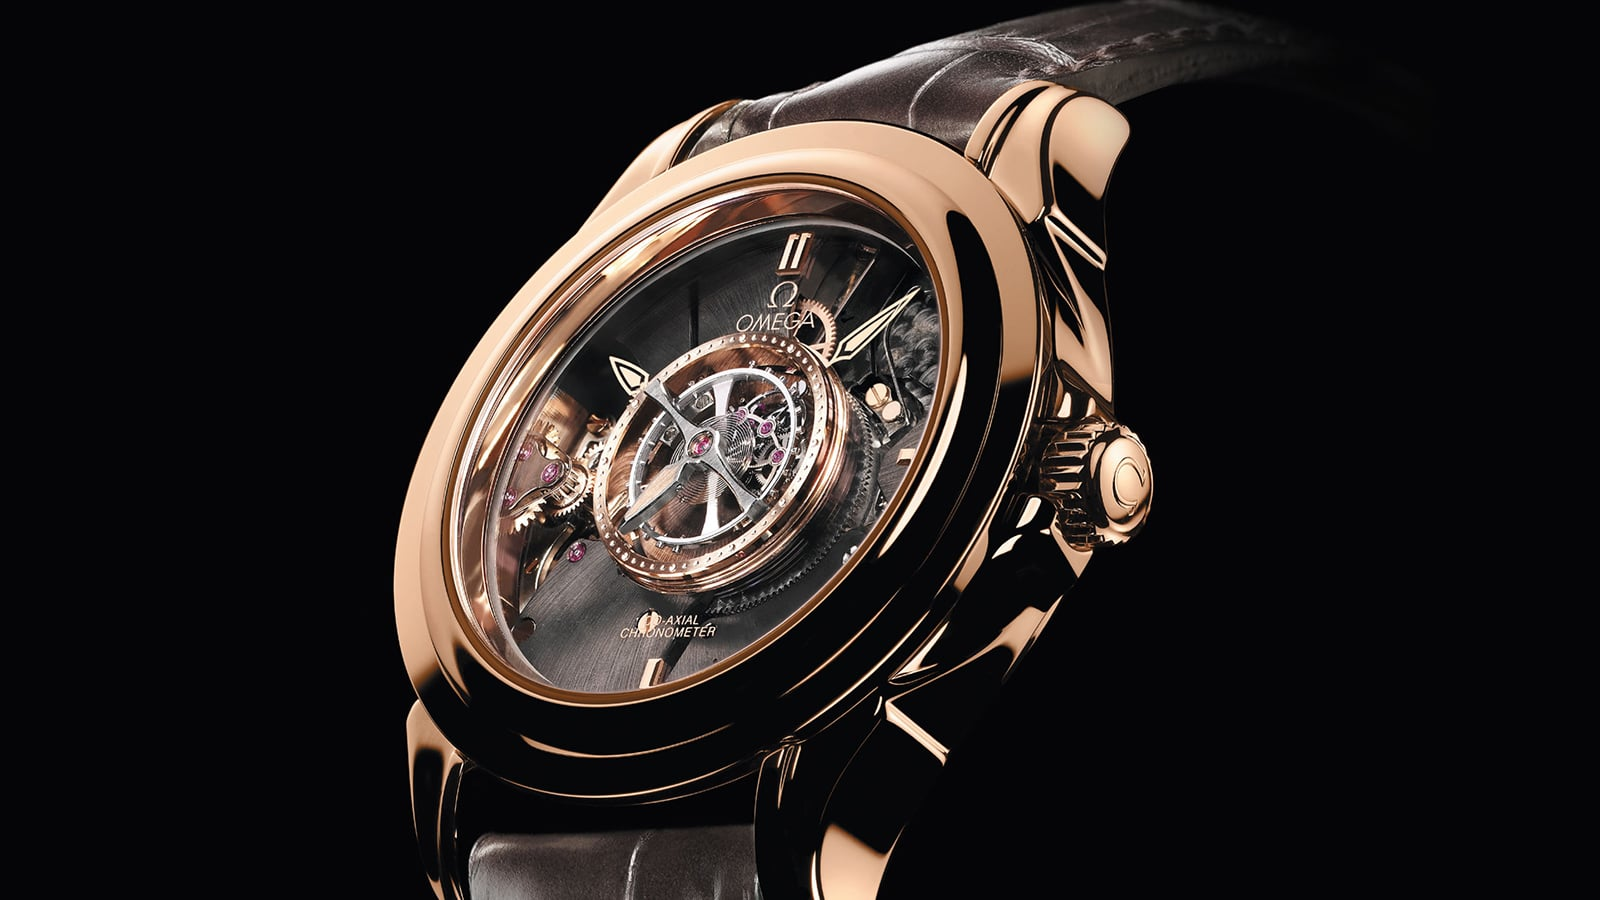 De Ville Tourbillon Die Kollektion - Folie 2 - 27539